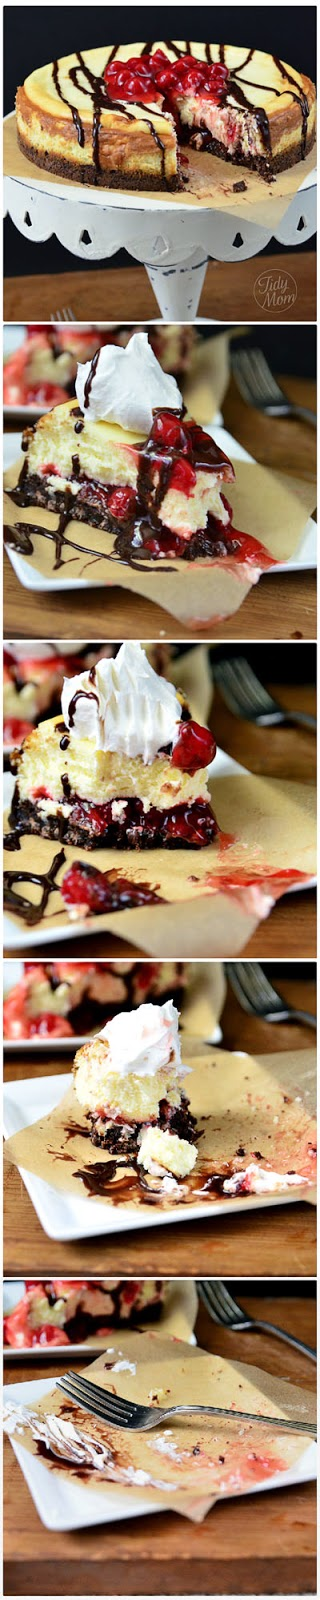 http://tidymom.net/2012/brownie-cherry-cheesecake/